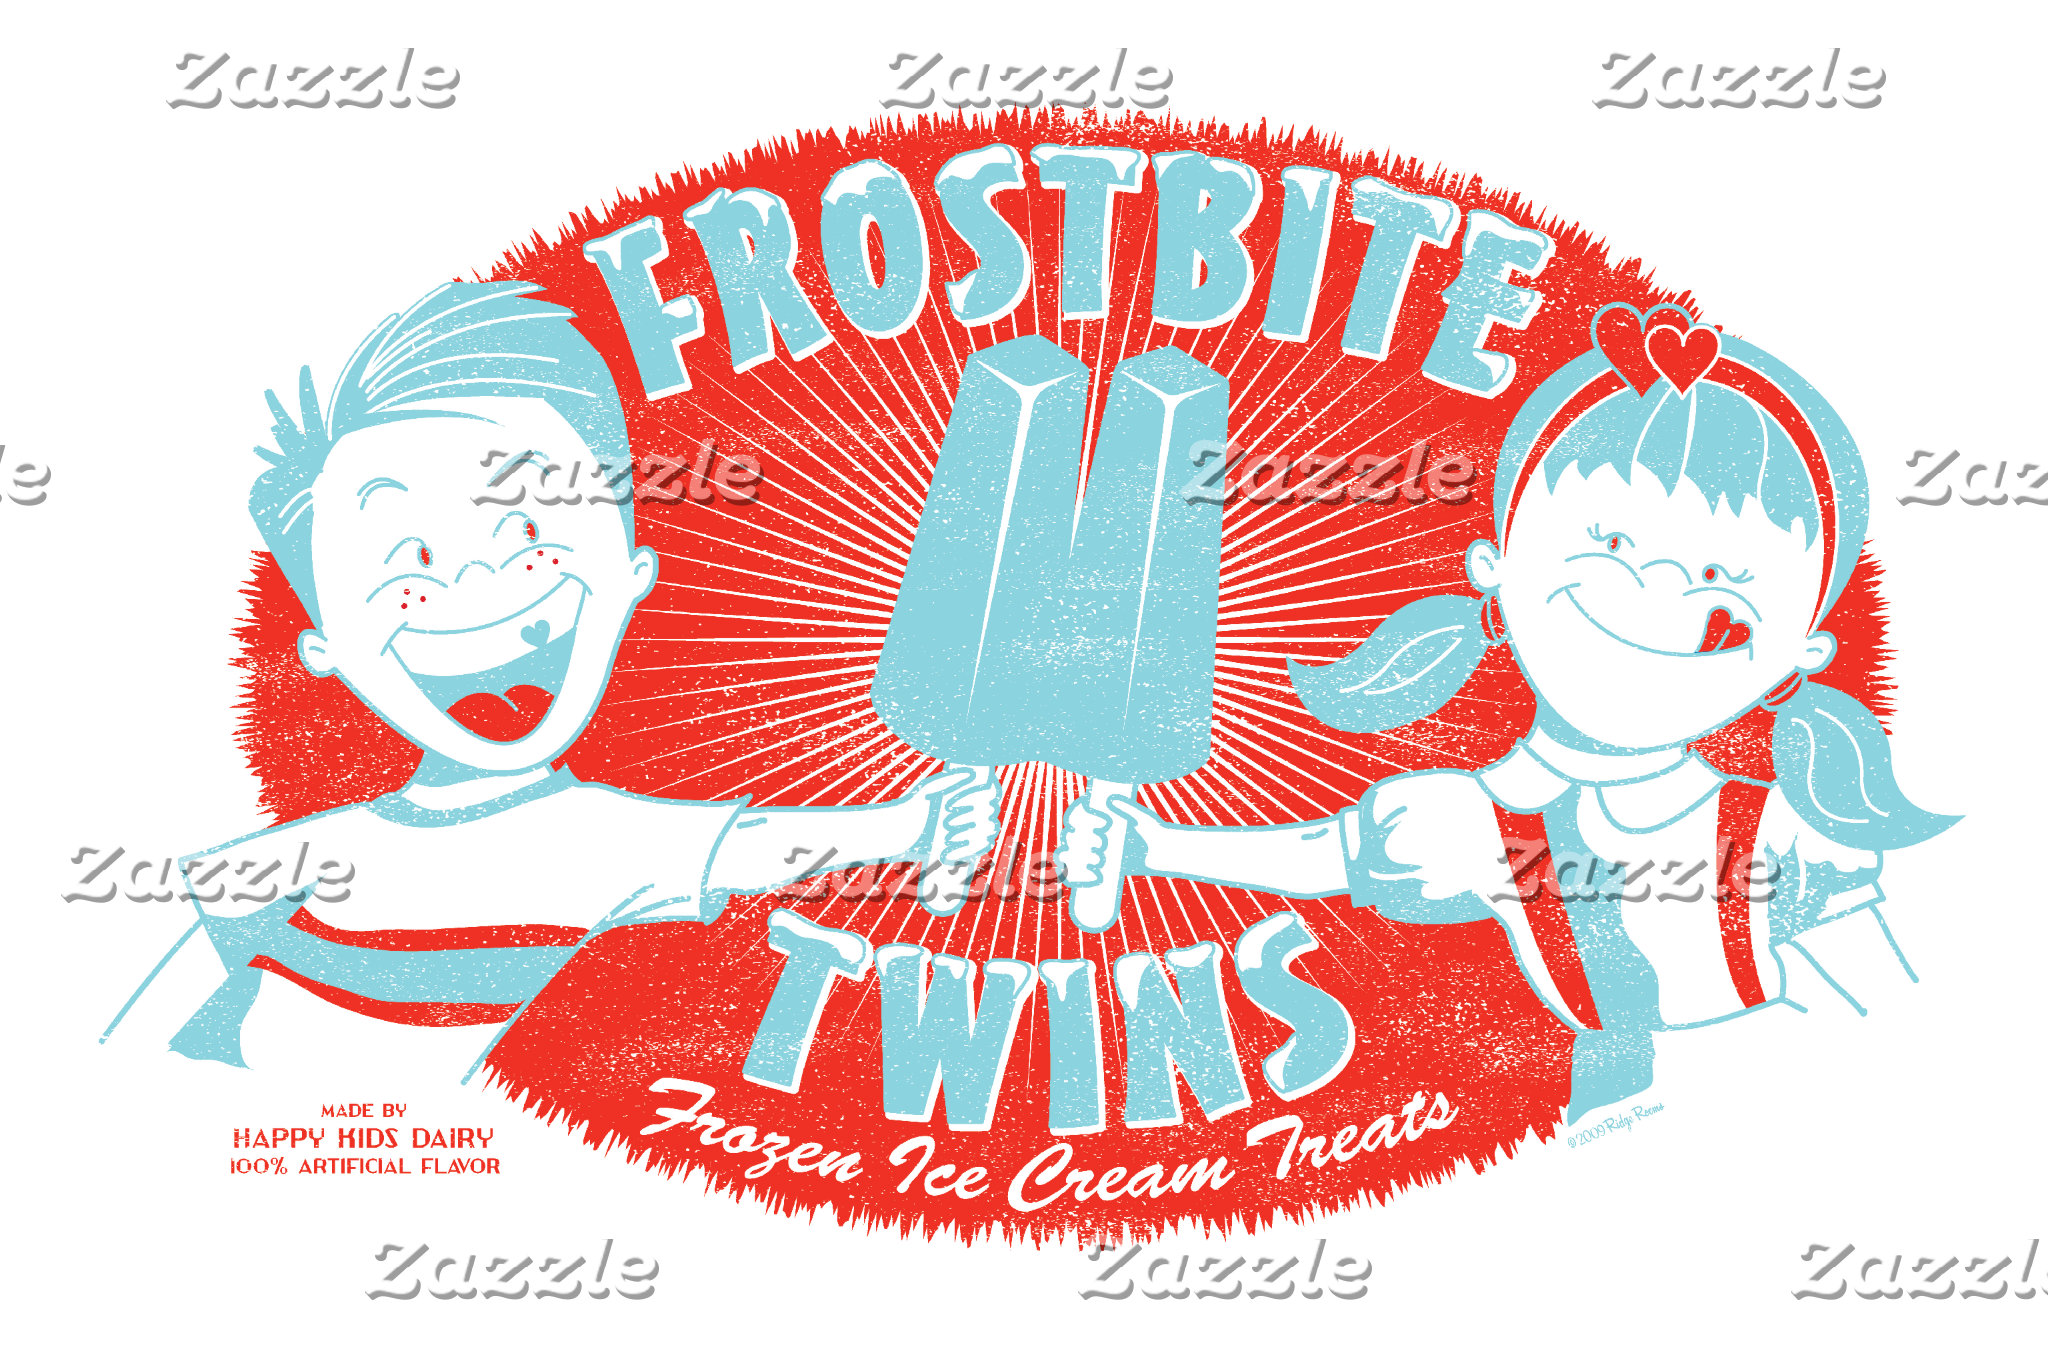 Frostbite Twins